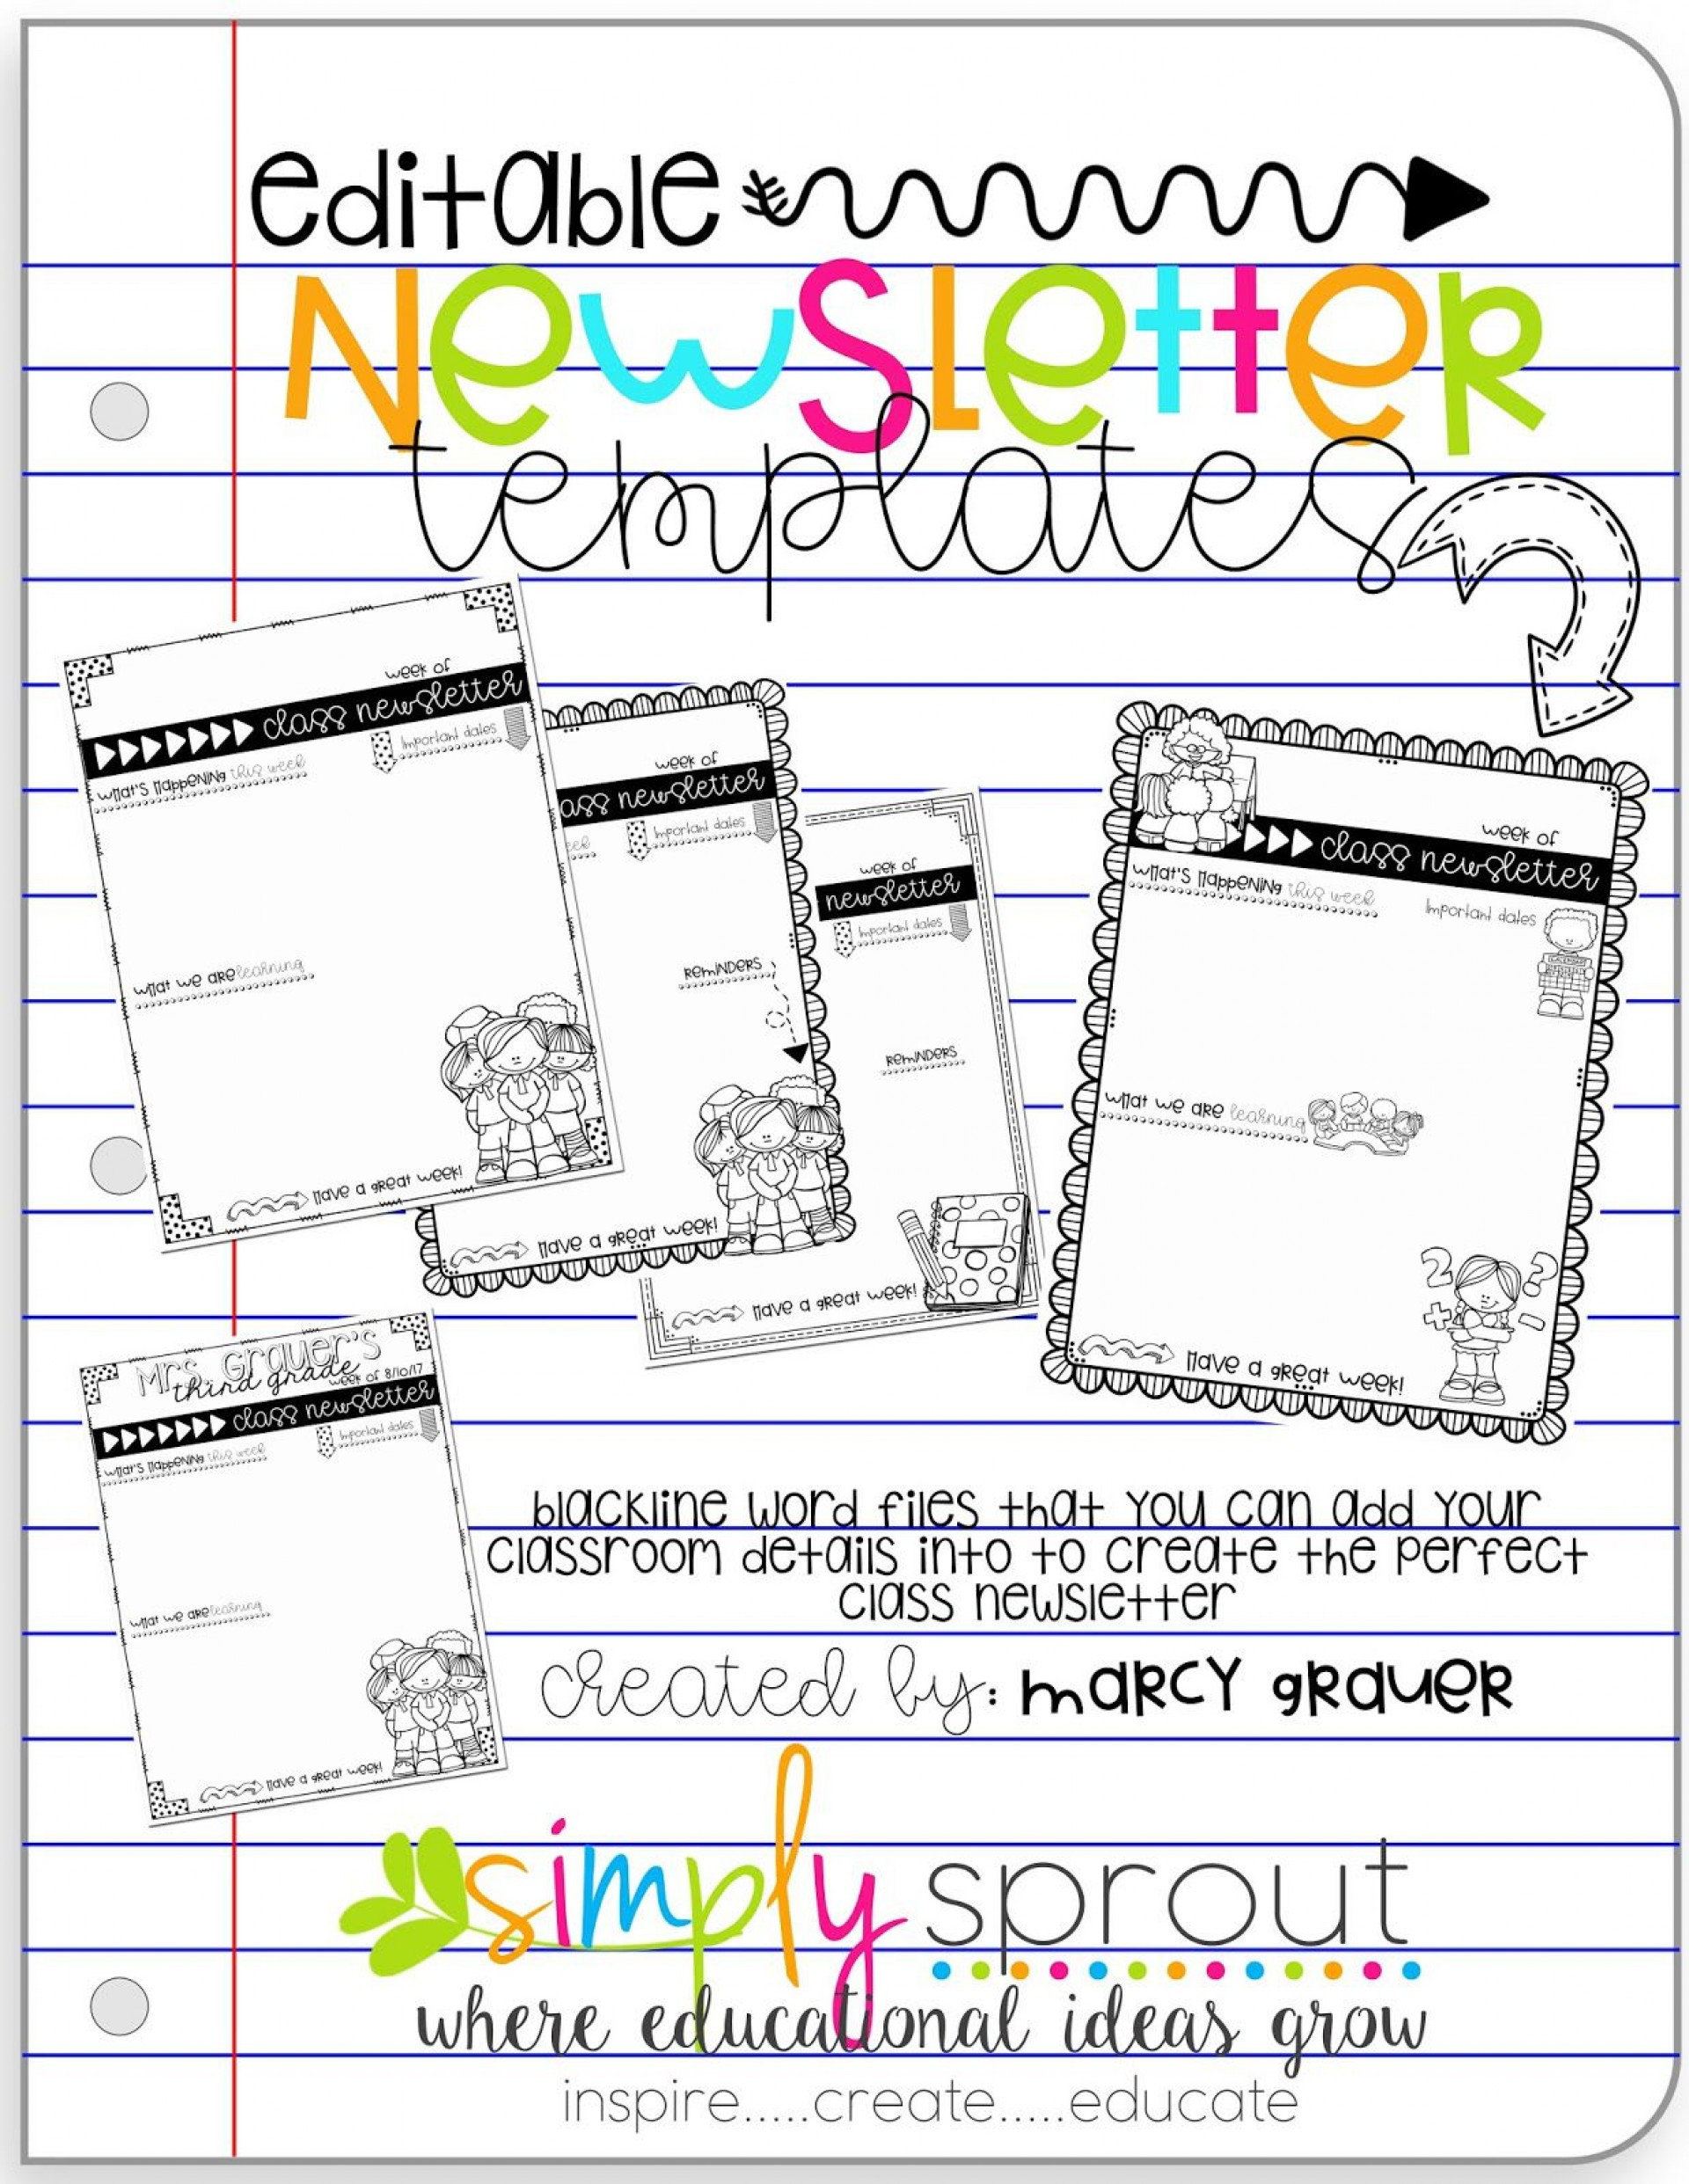 009 Surprising School Newsletter Template Word Design  Free Classroom For Microsoft1920